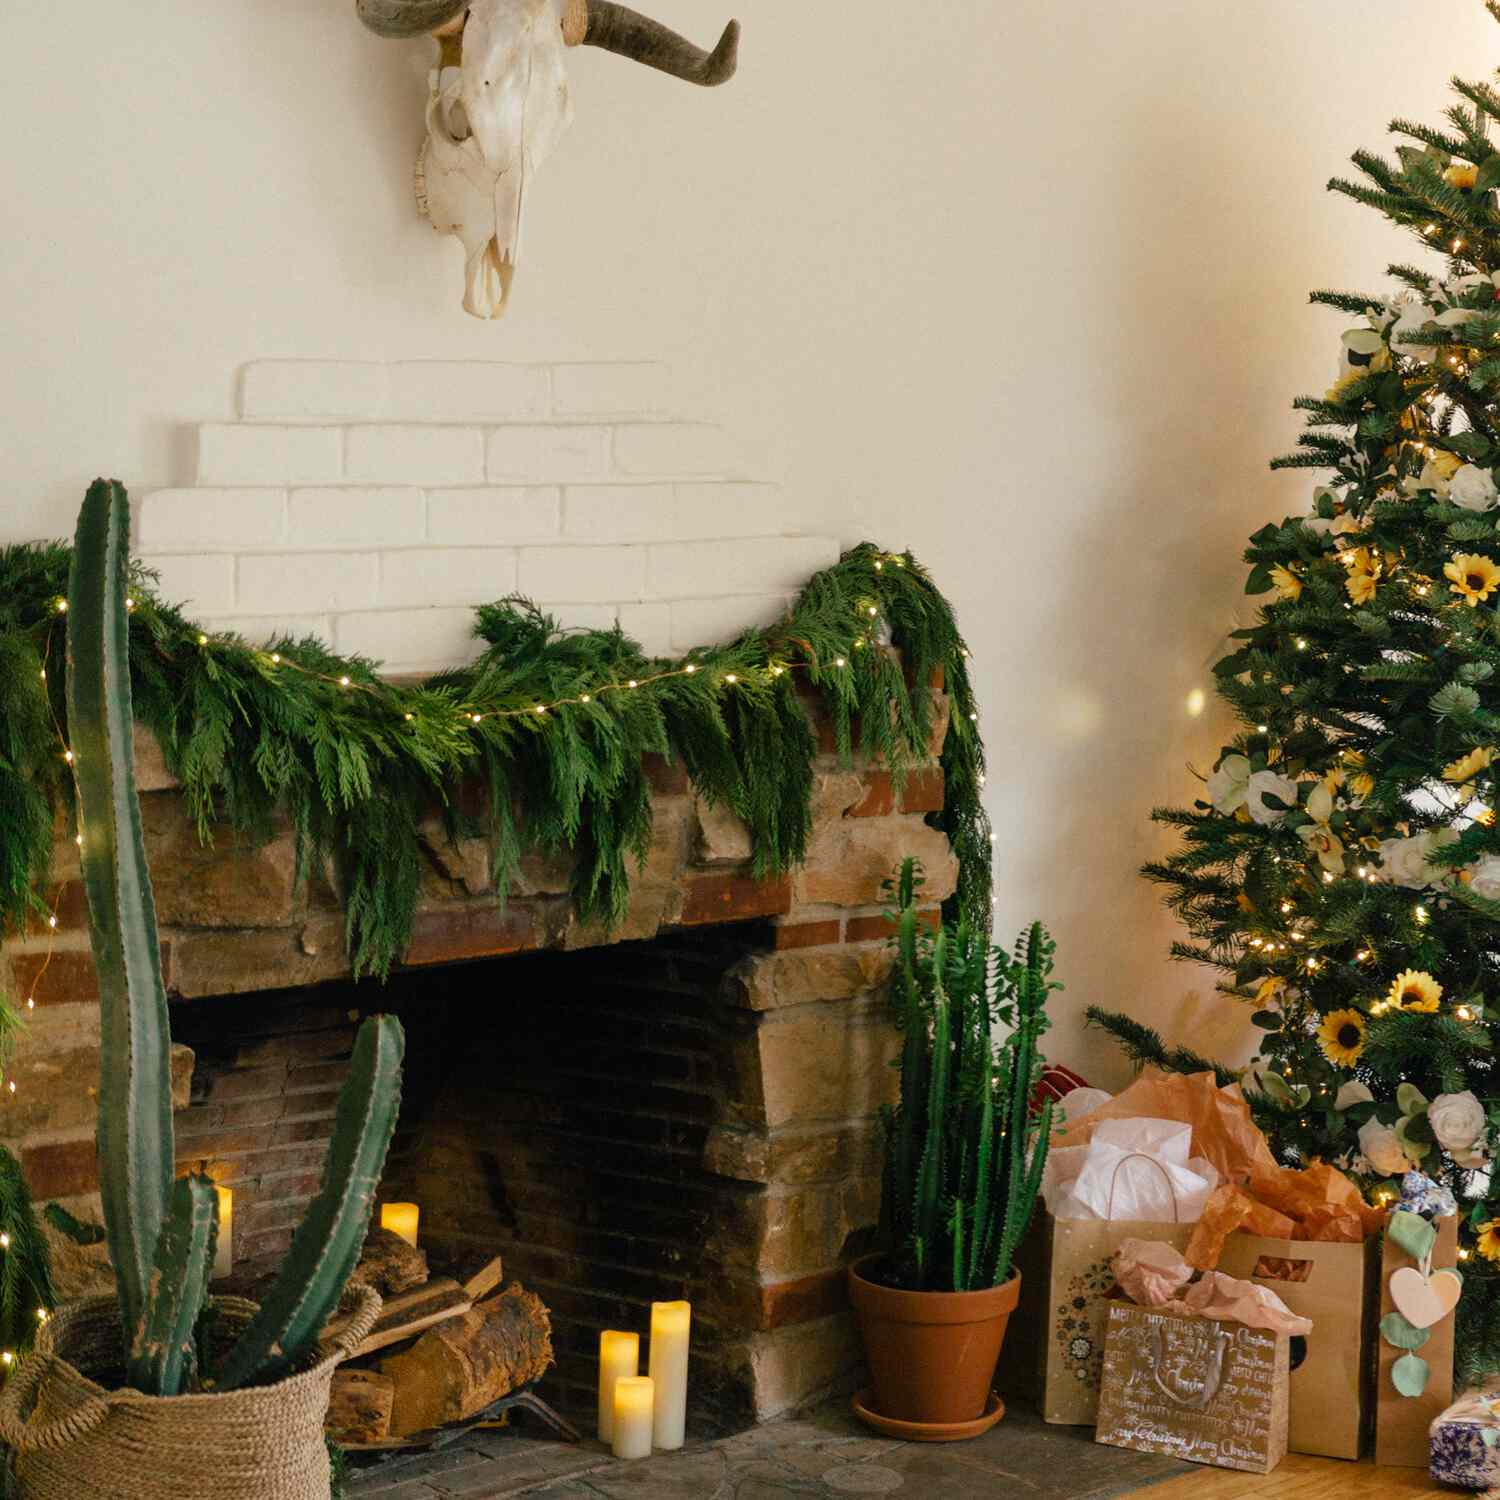 Christmas Decorating Ideas Designers Swear By_5 christmas decorating ideas Christmas Decorating Ideas Designers Swear By Christmas Decorating Ideas Designers Swear By 5